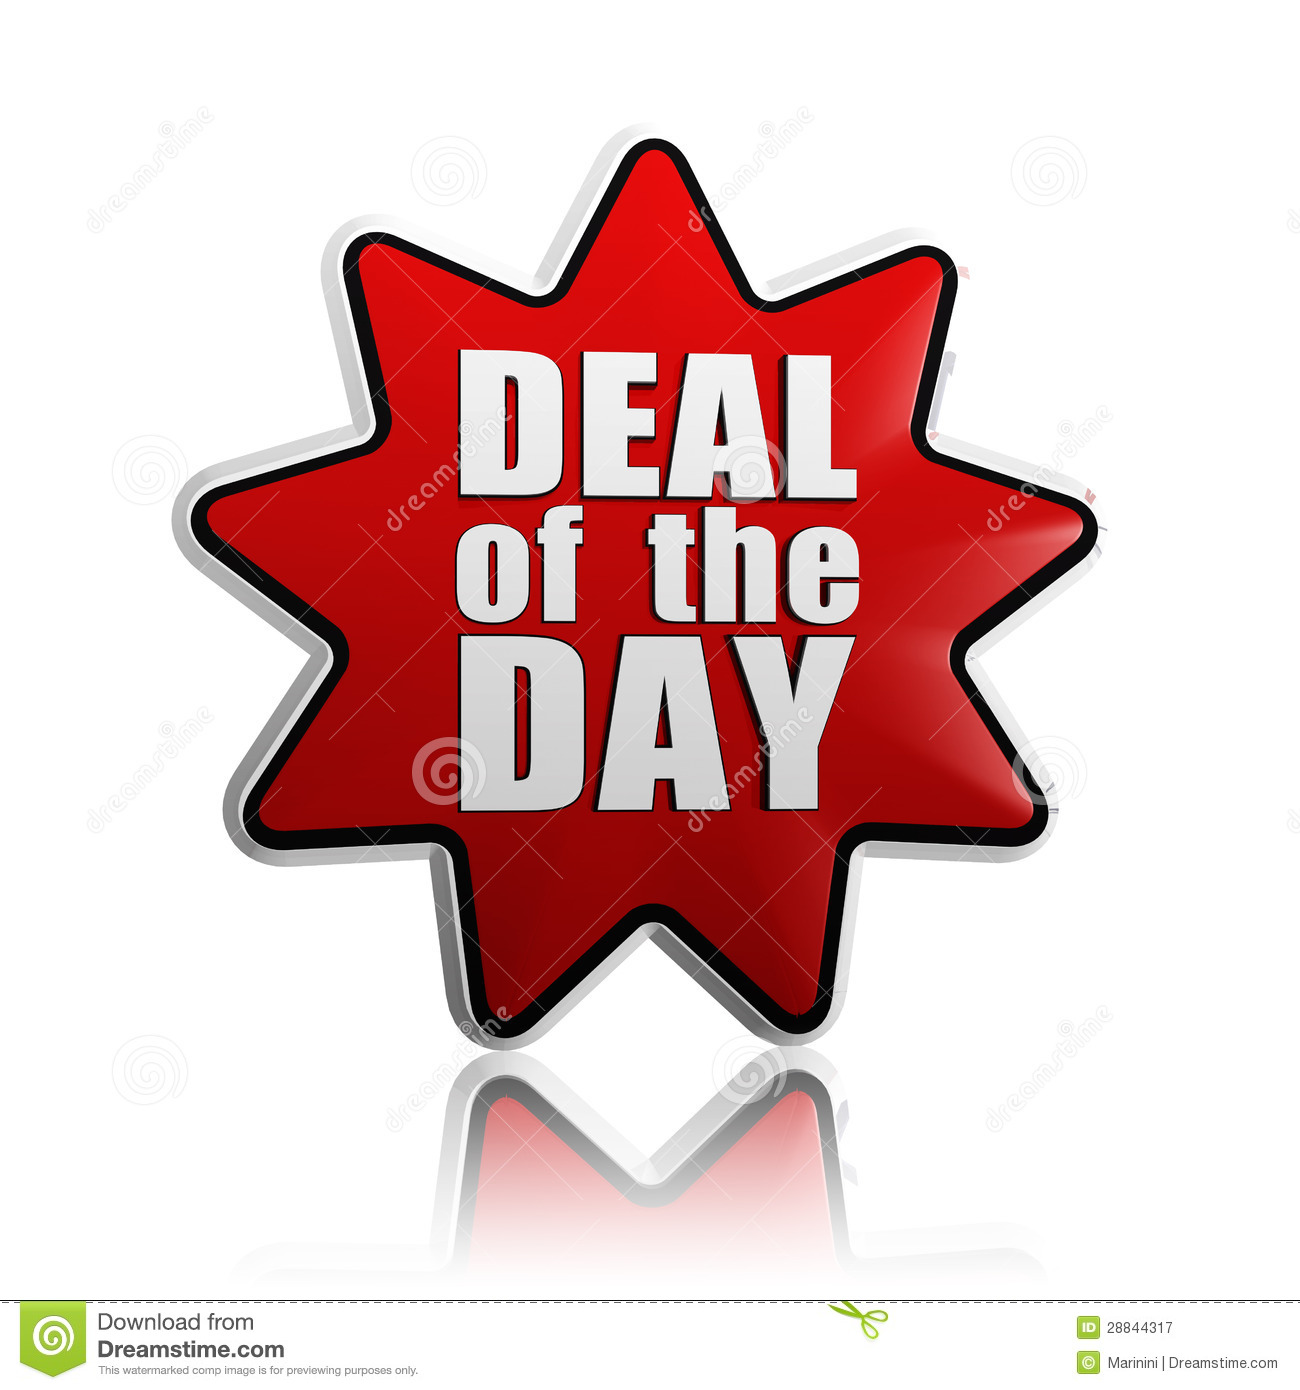 Deal of the day in red star royalty free stock photography image